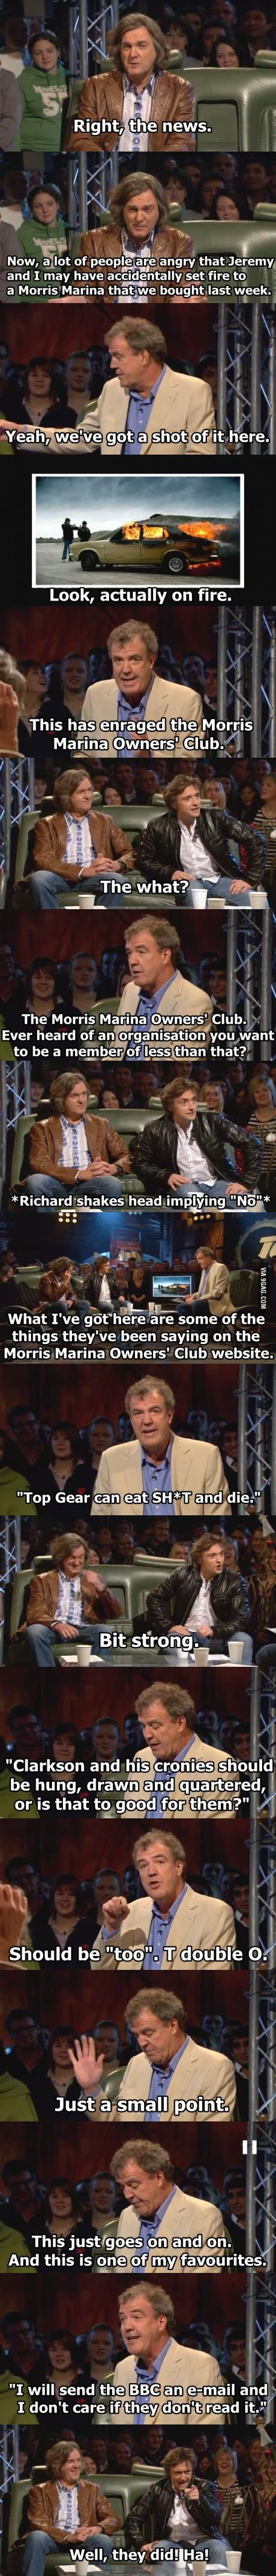 One of my favorite Top Gear scenes.